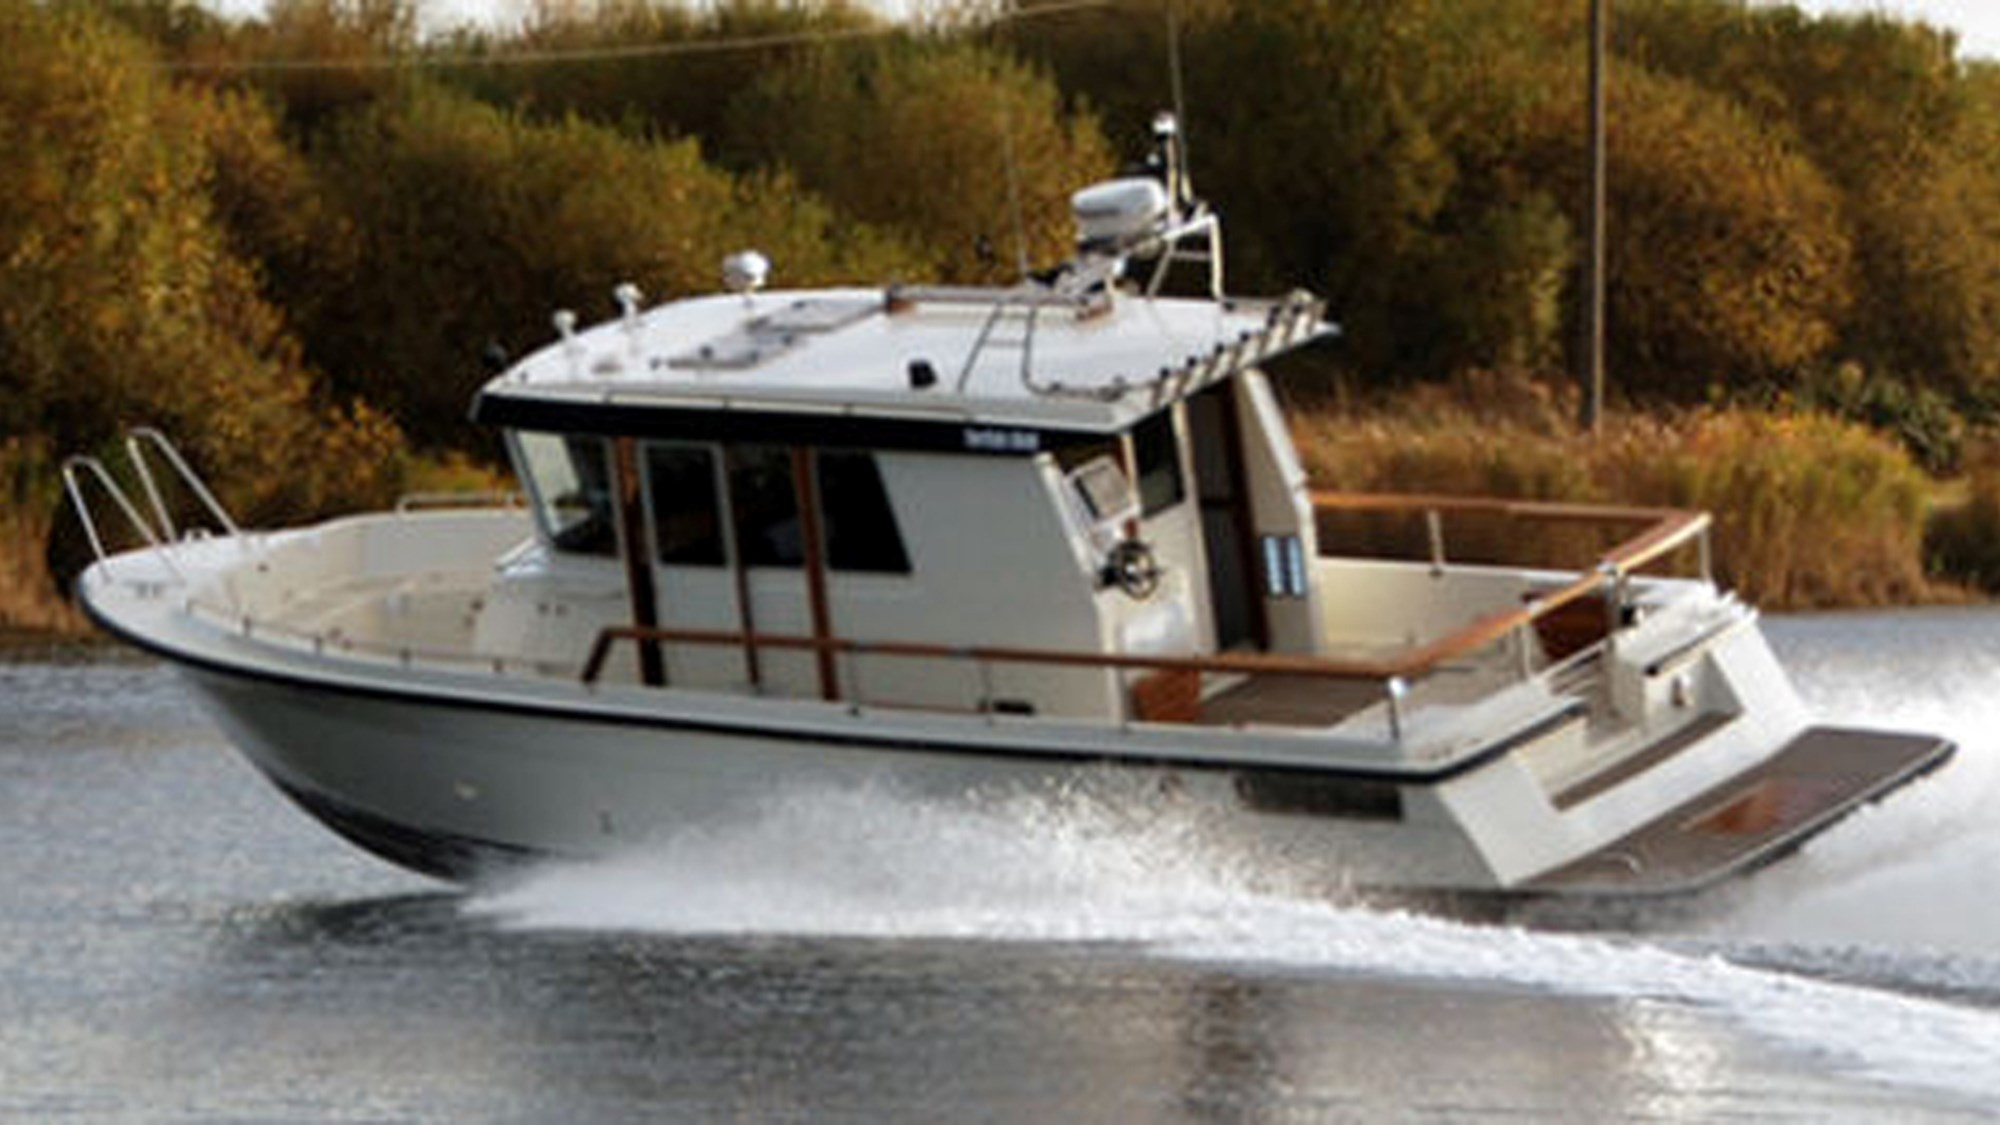 Rent charter motor boat for fishing trips full day tour for Fishing boat motor